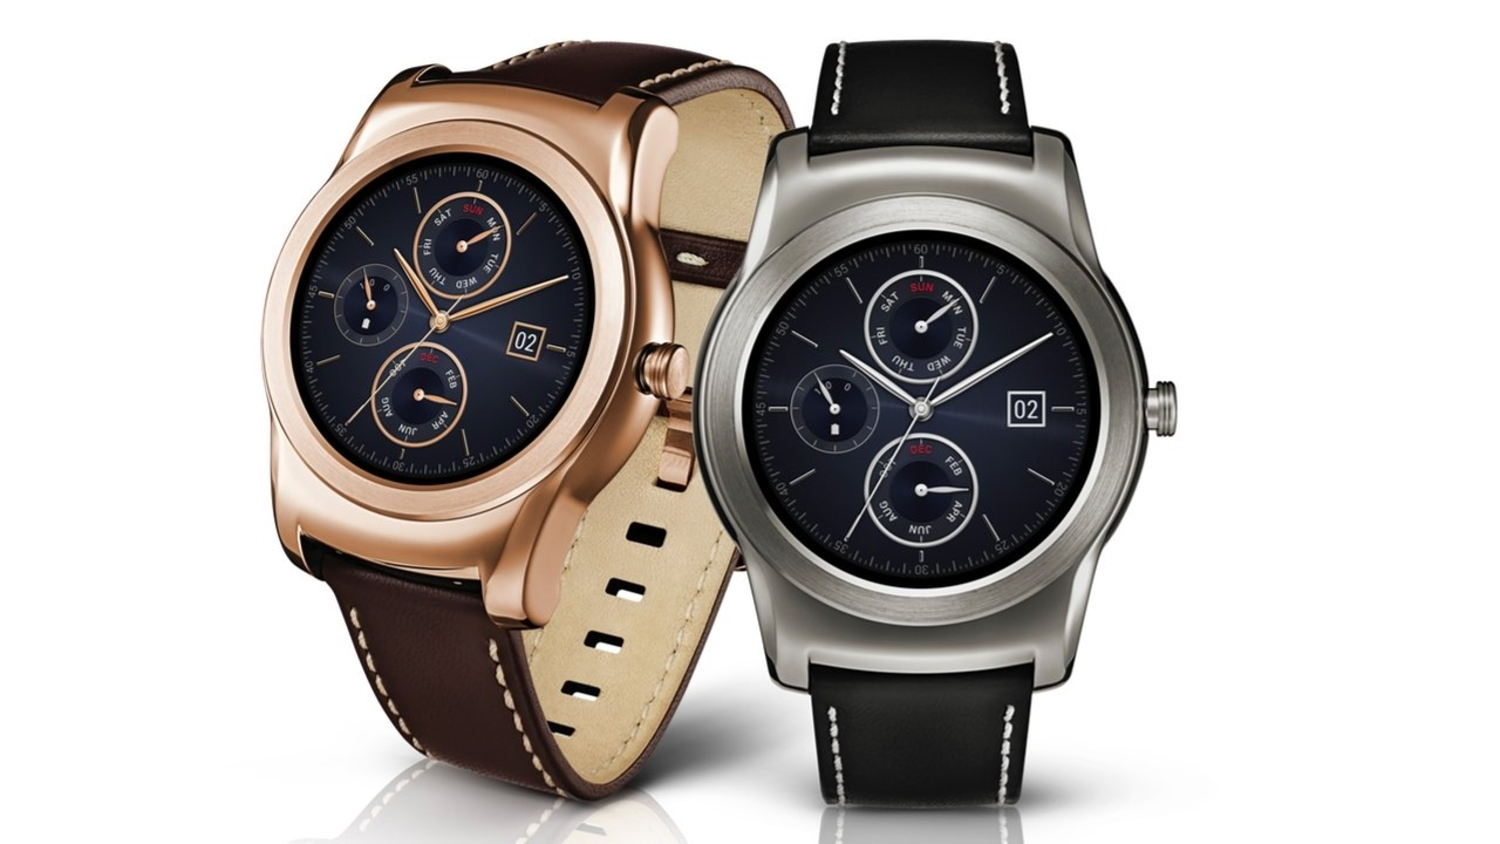 The LG Watch Urbane Ships May 8